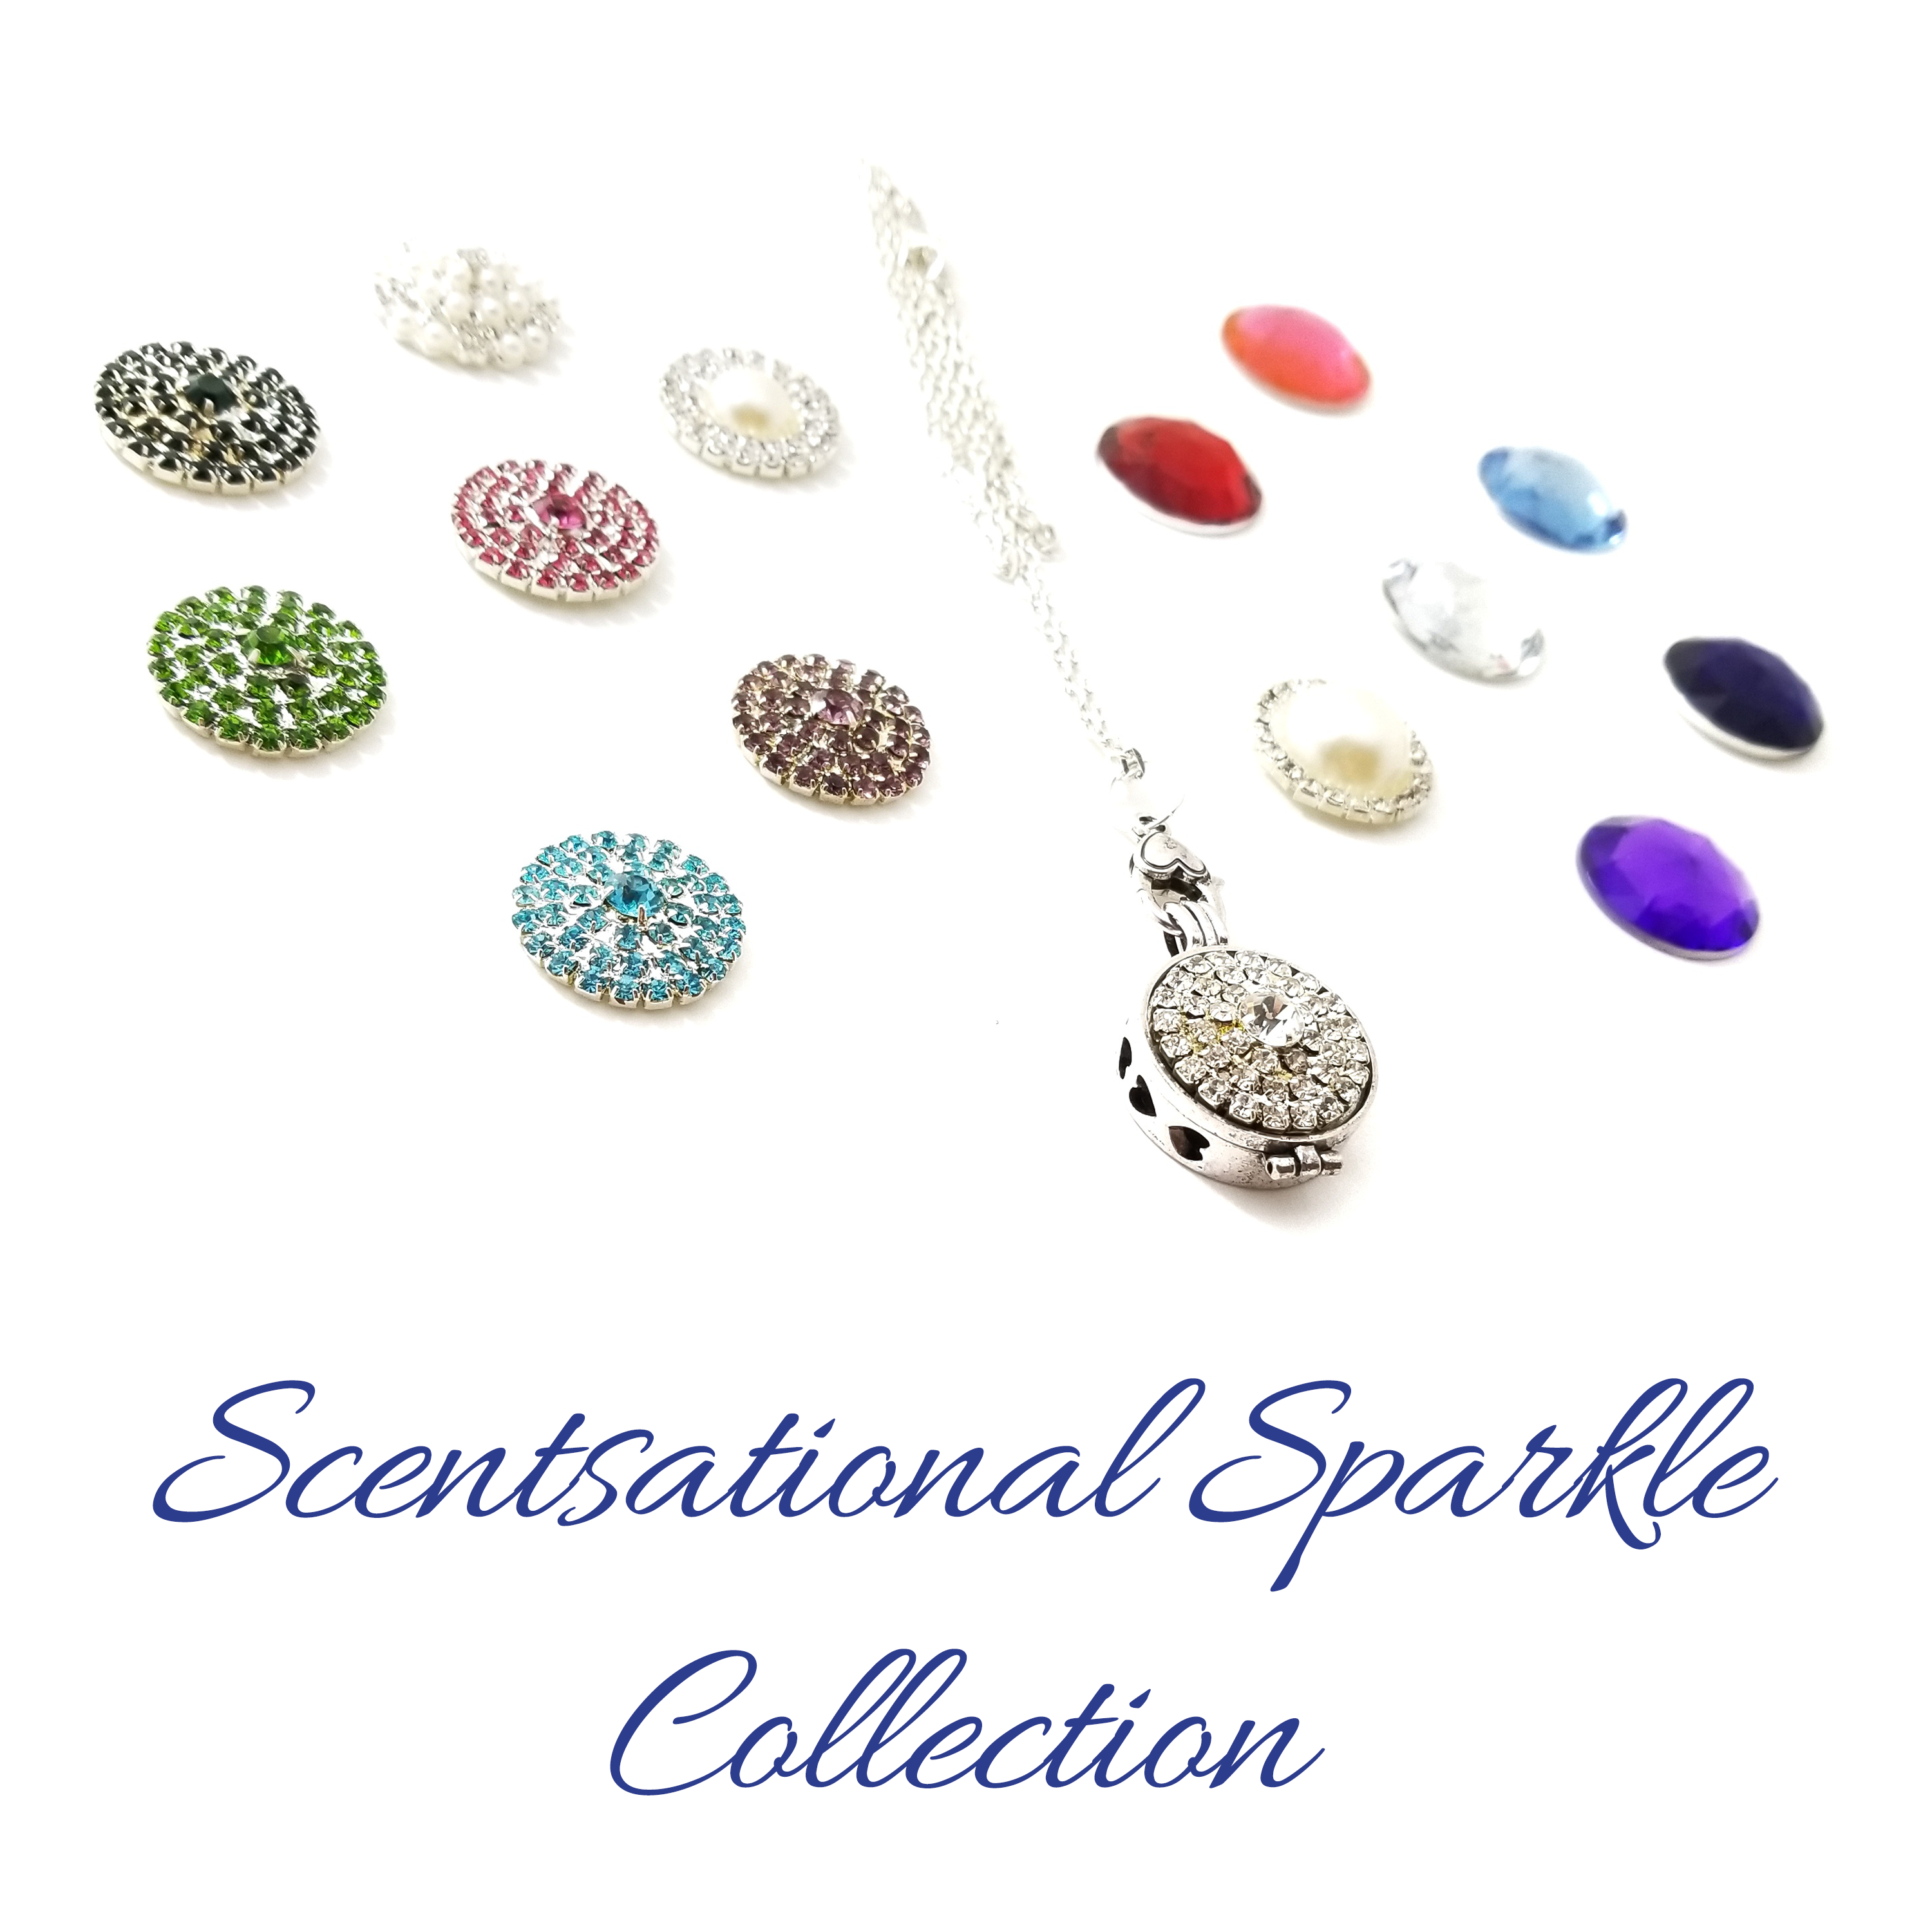 New aromatherapy necklaces featuring beautiful interchangeable rhinestone baubles expected to sell out